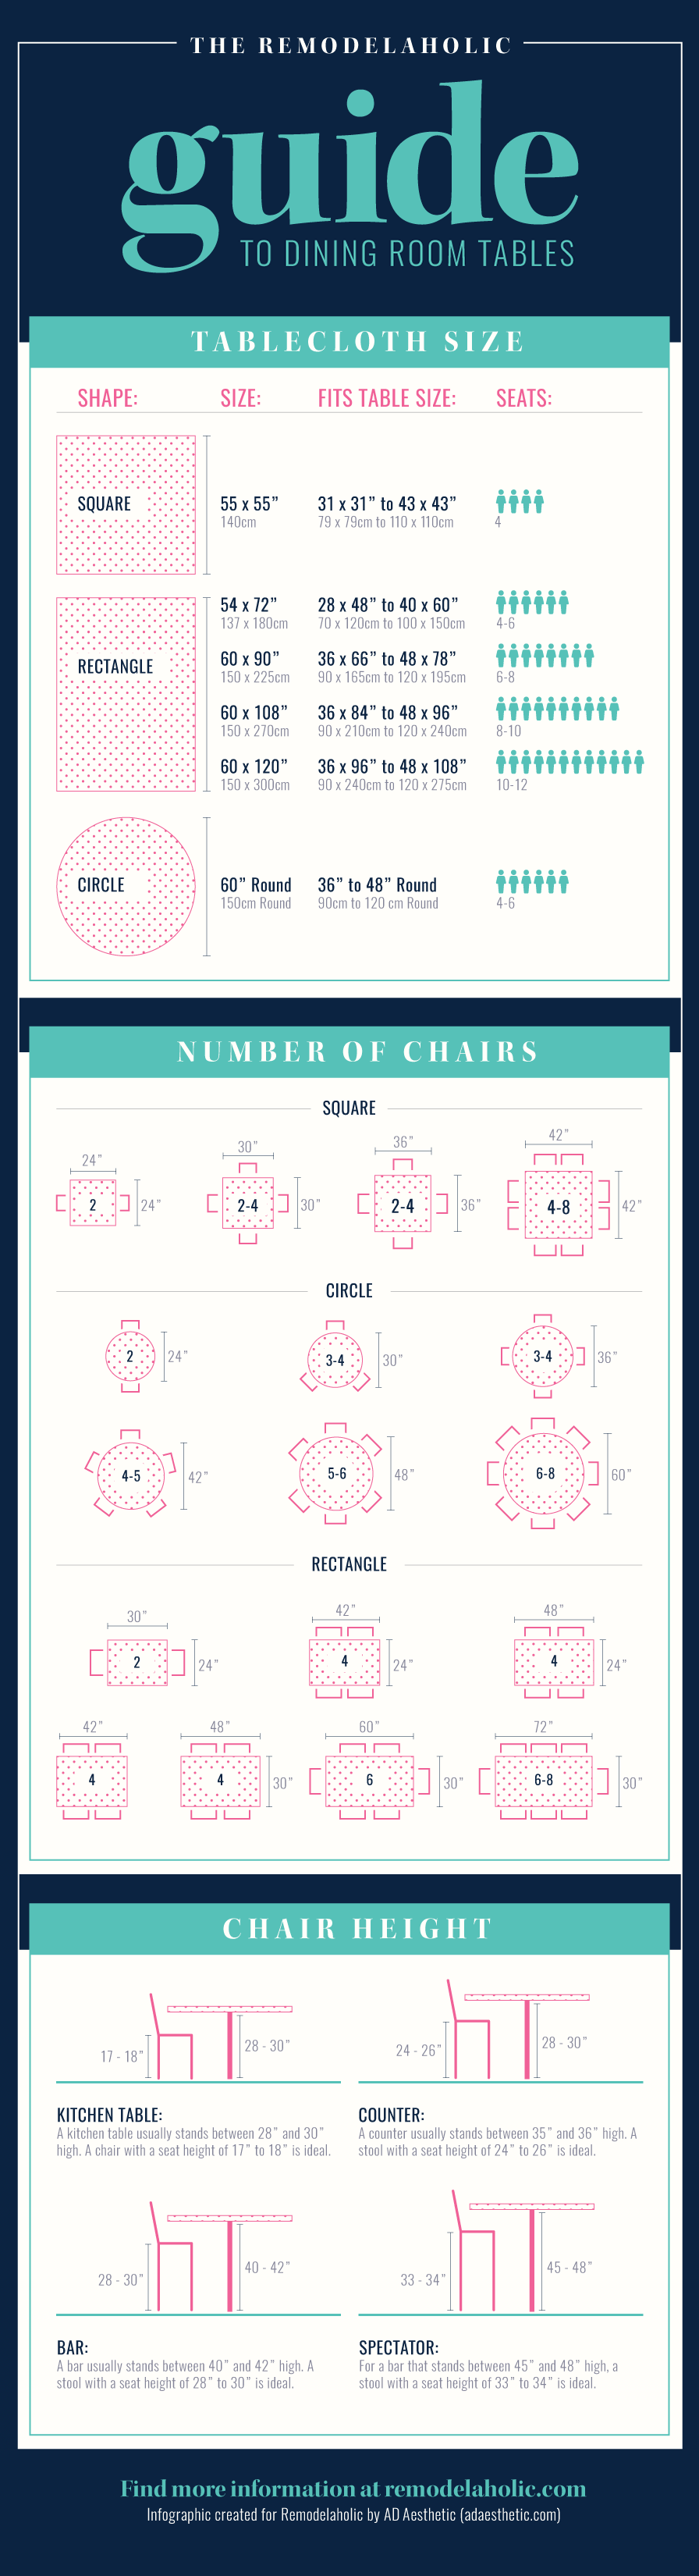 Remodelaholic The Guide To Dining Table Sizes